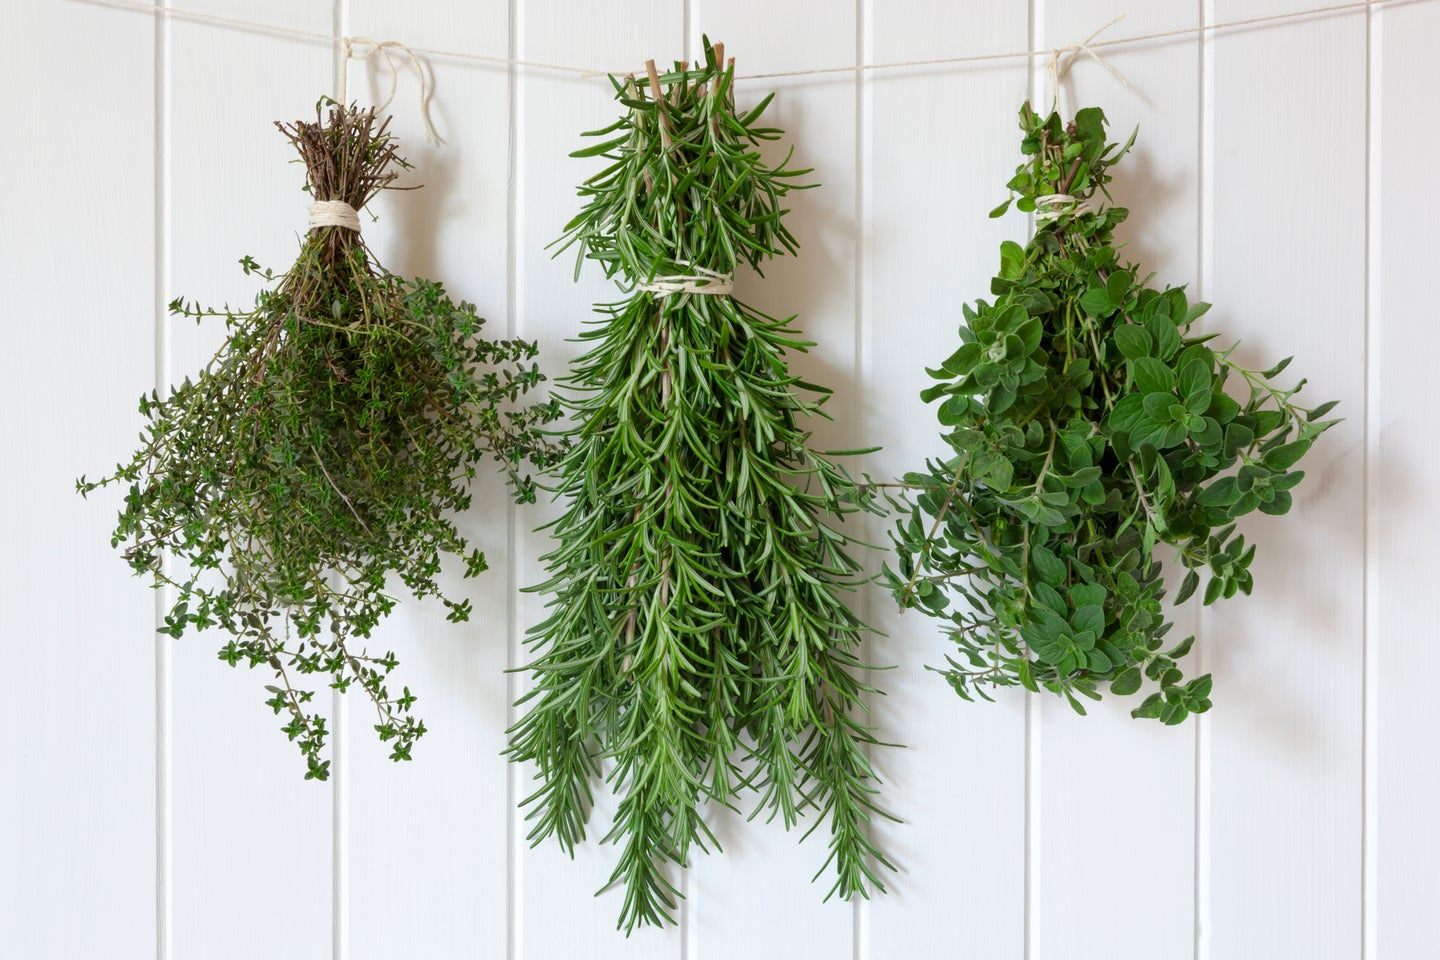 Bunches of fresh herbs hanging over white timber.  Includes thyme, rosemary and oregano.